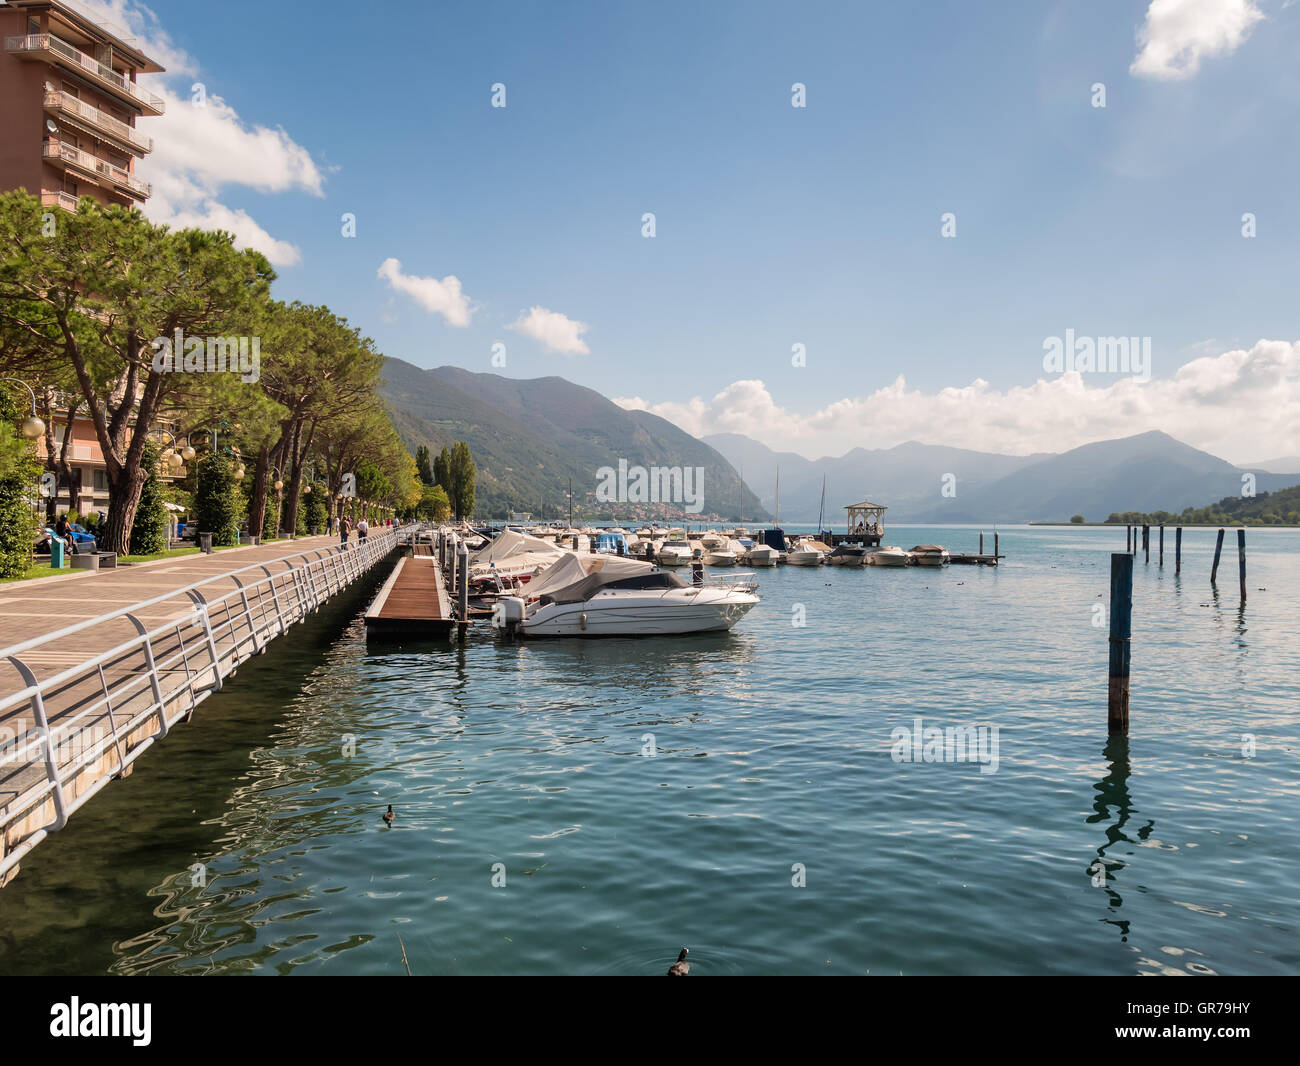 Sarnico village at the lakeside of lake Iseo in Italy - Stock Image